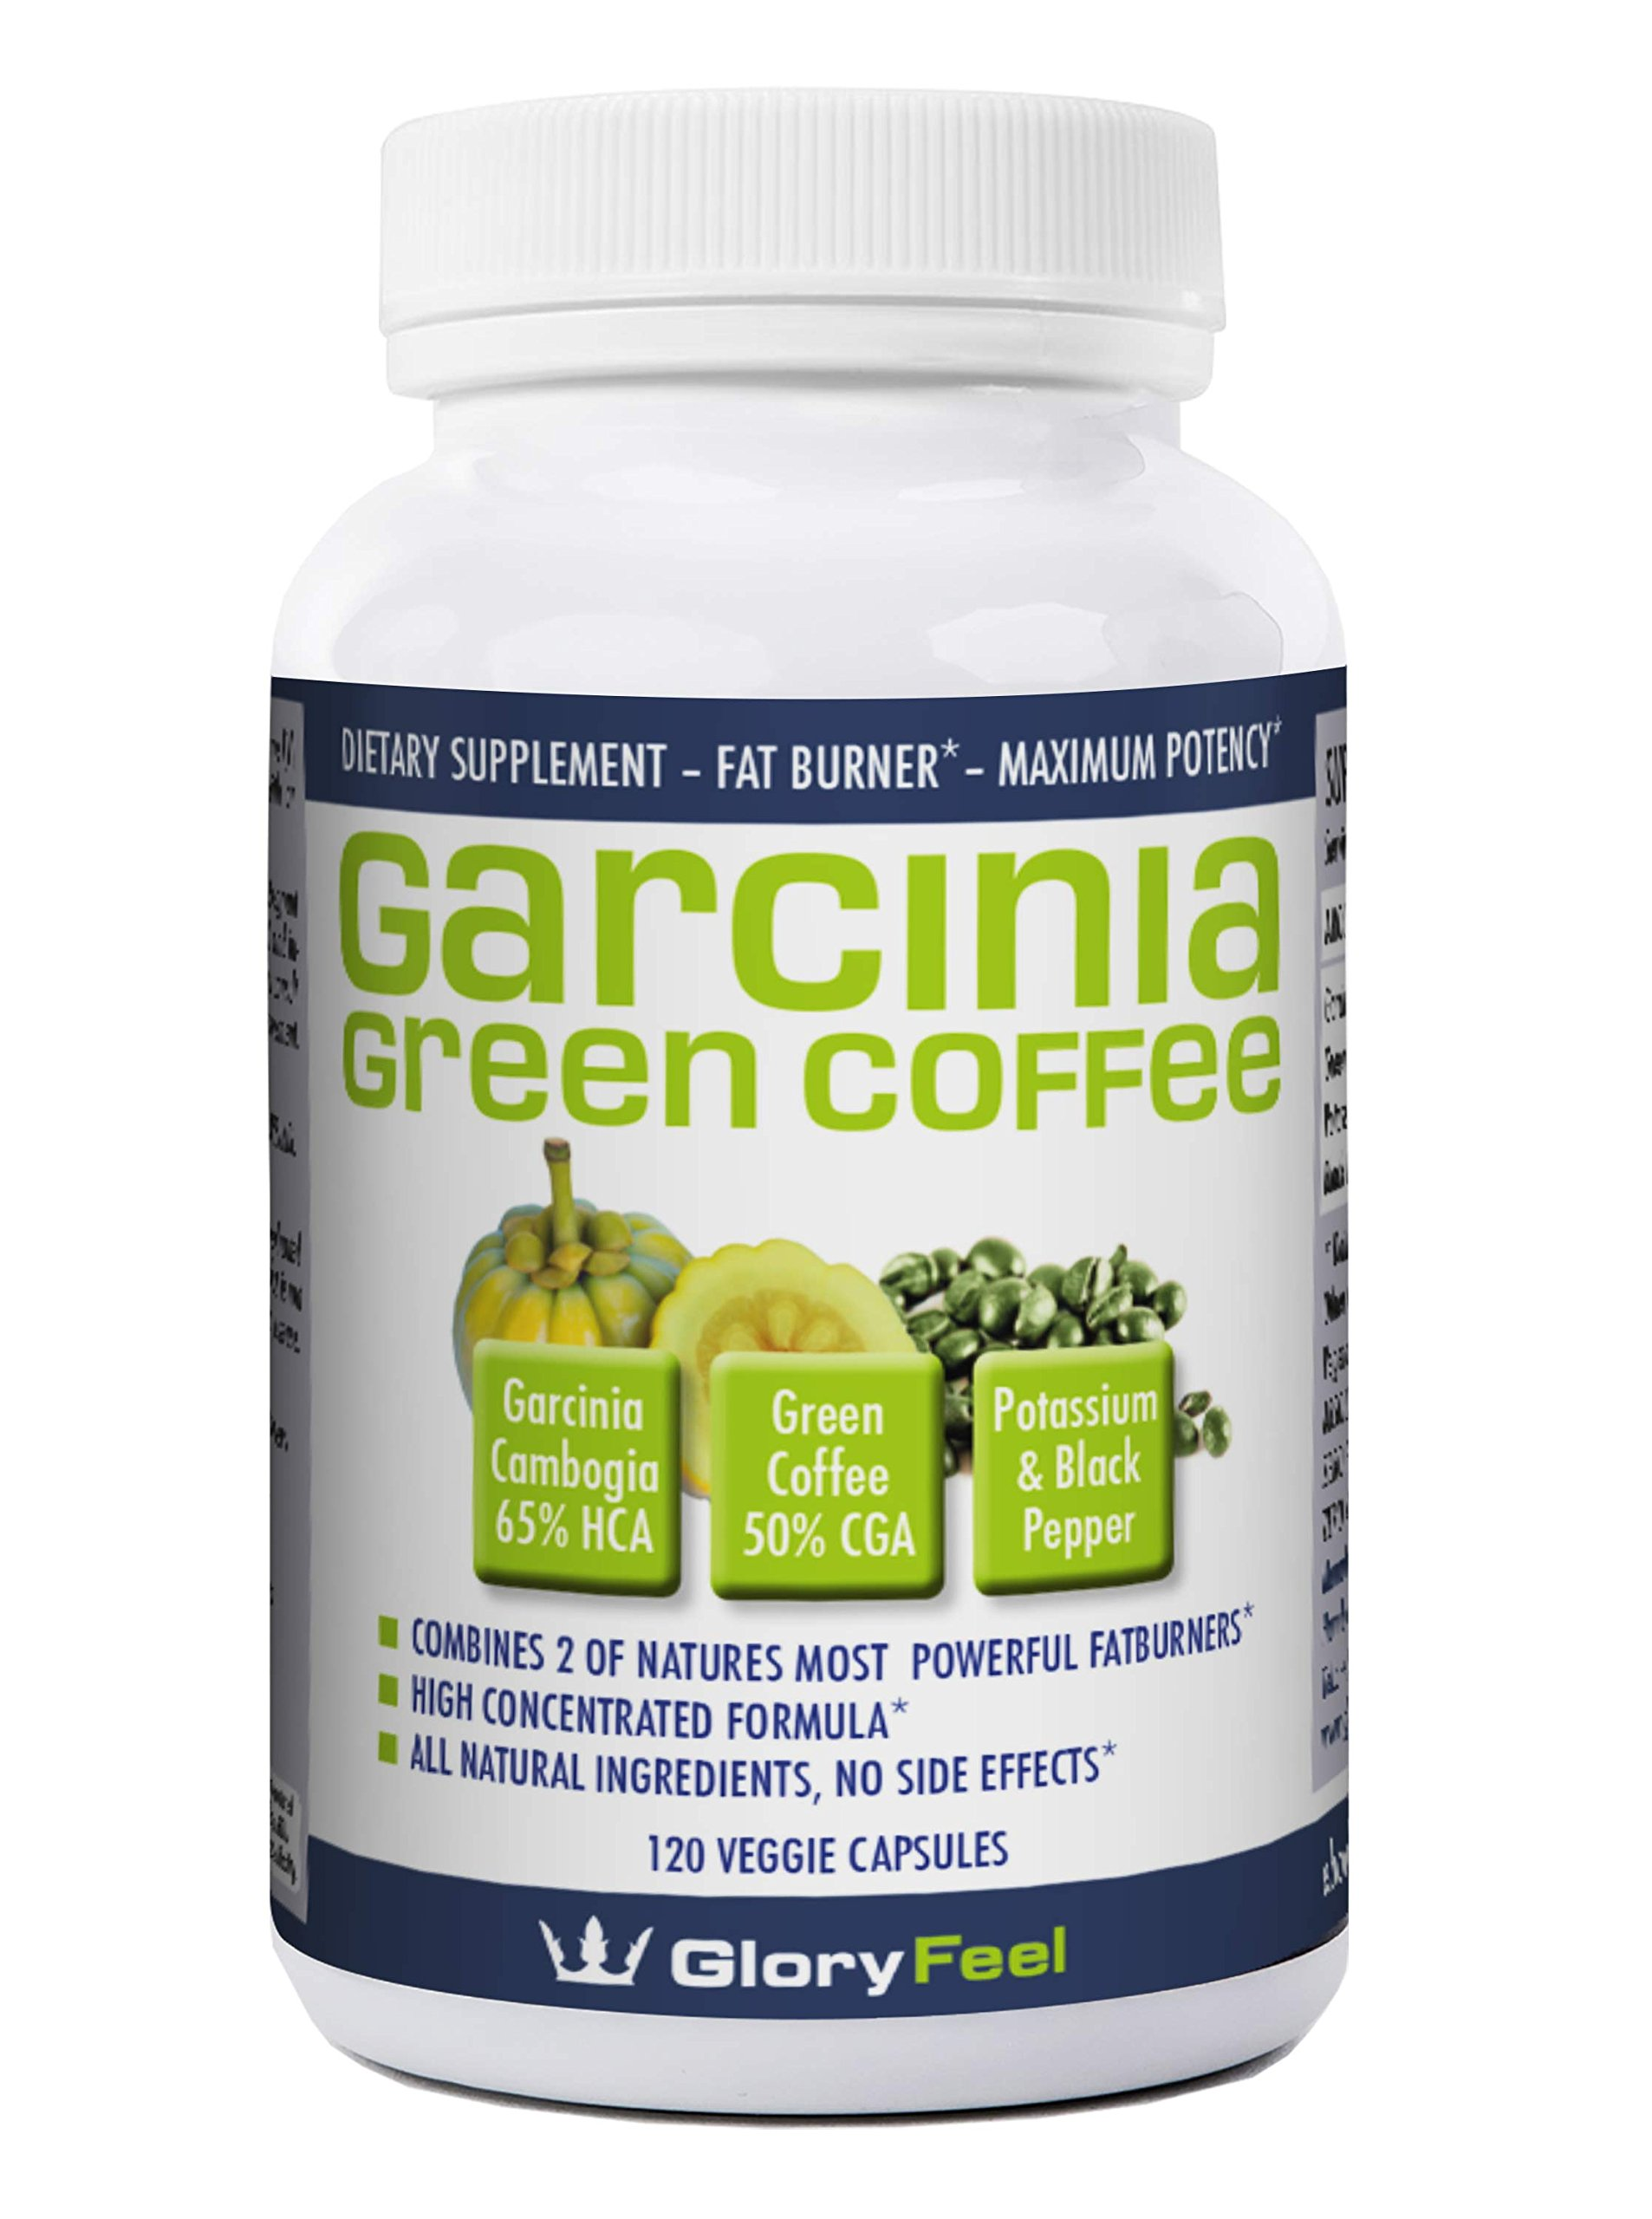 GloryFeel Garcinia Cambogia (95% HCA) + Green Coffee Extract - Weight Loss Pills for Women - Mens Supplements - Best Appetite Suppressant - 100% Natural Fatburner